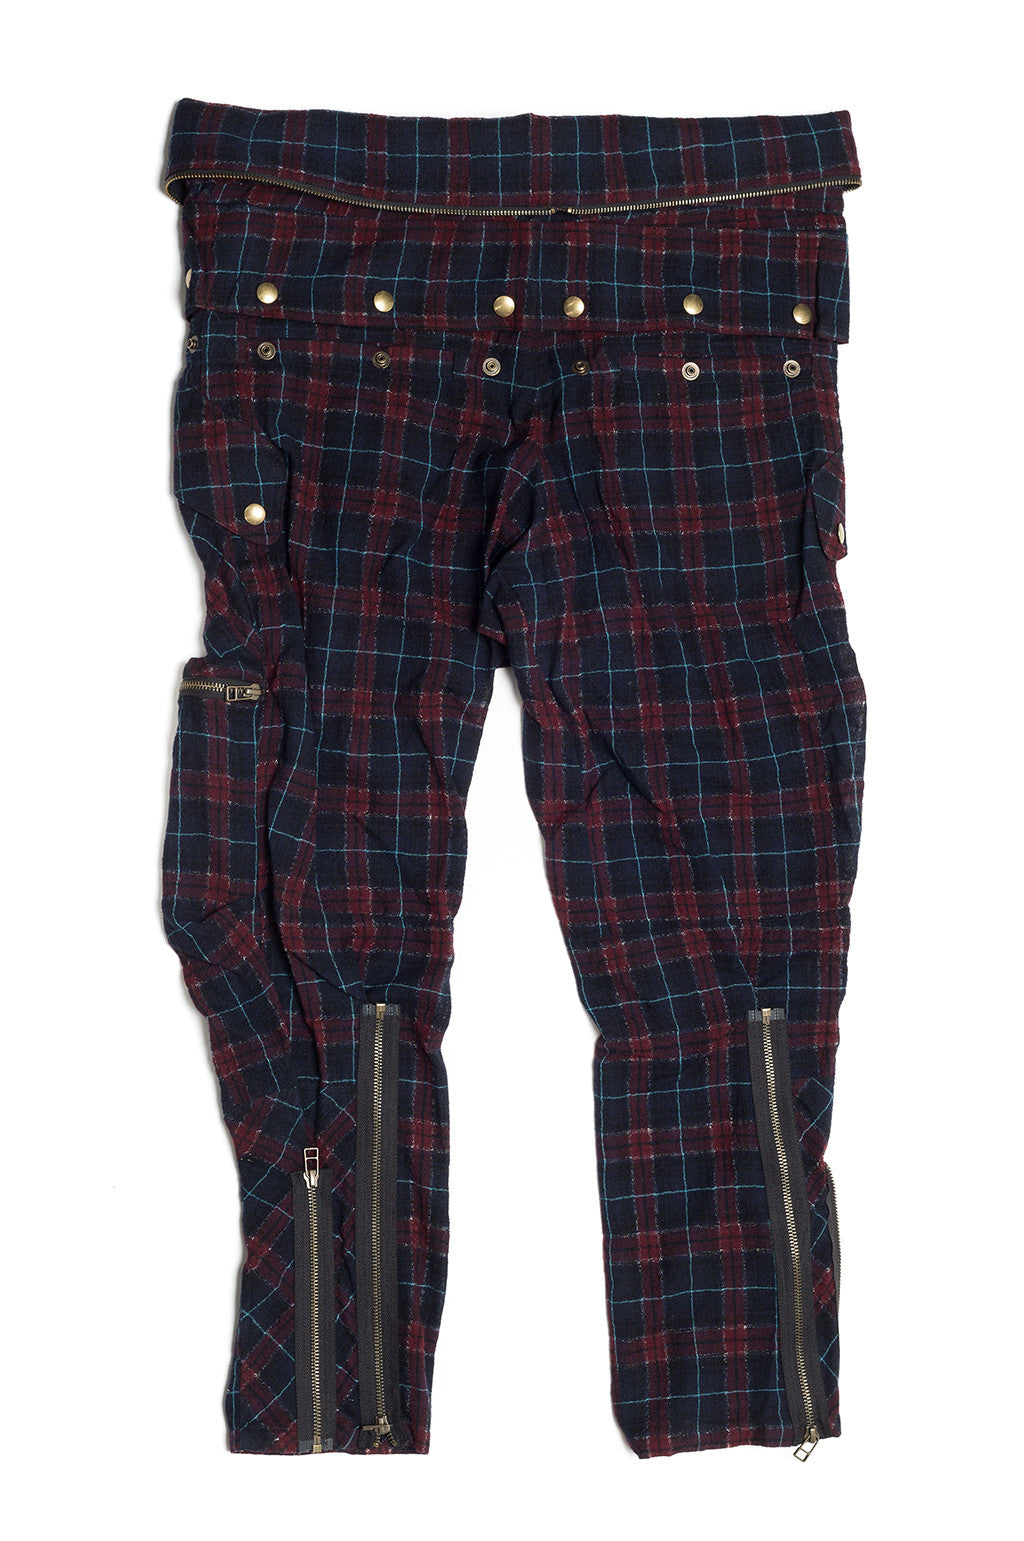 Tartan Wool Gauze Multi Pocket Pants - Faith Connexion - Pants - TOPGEARNY